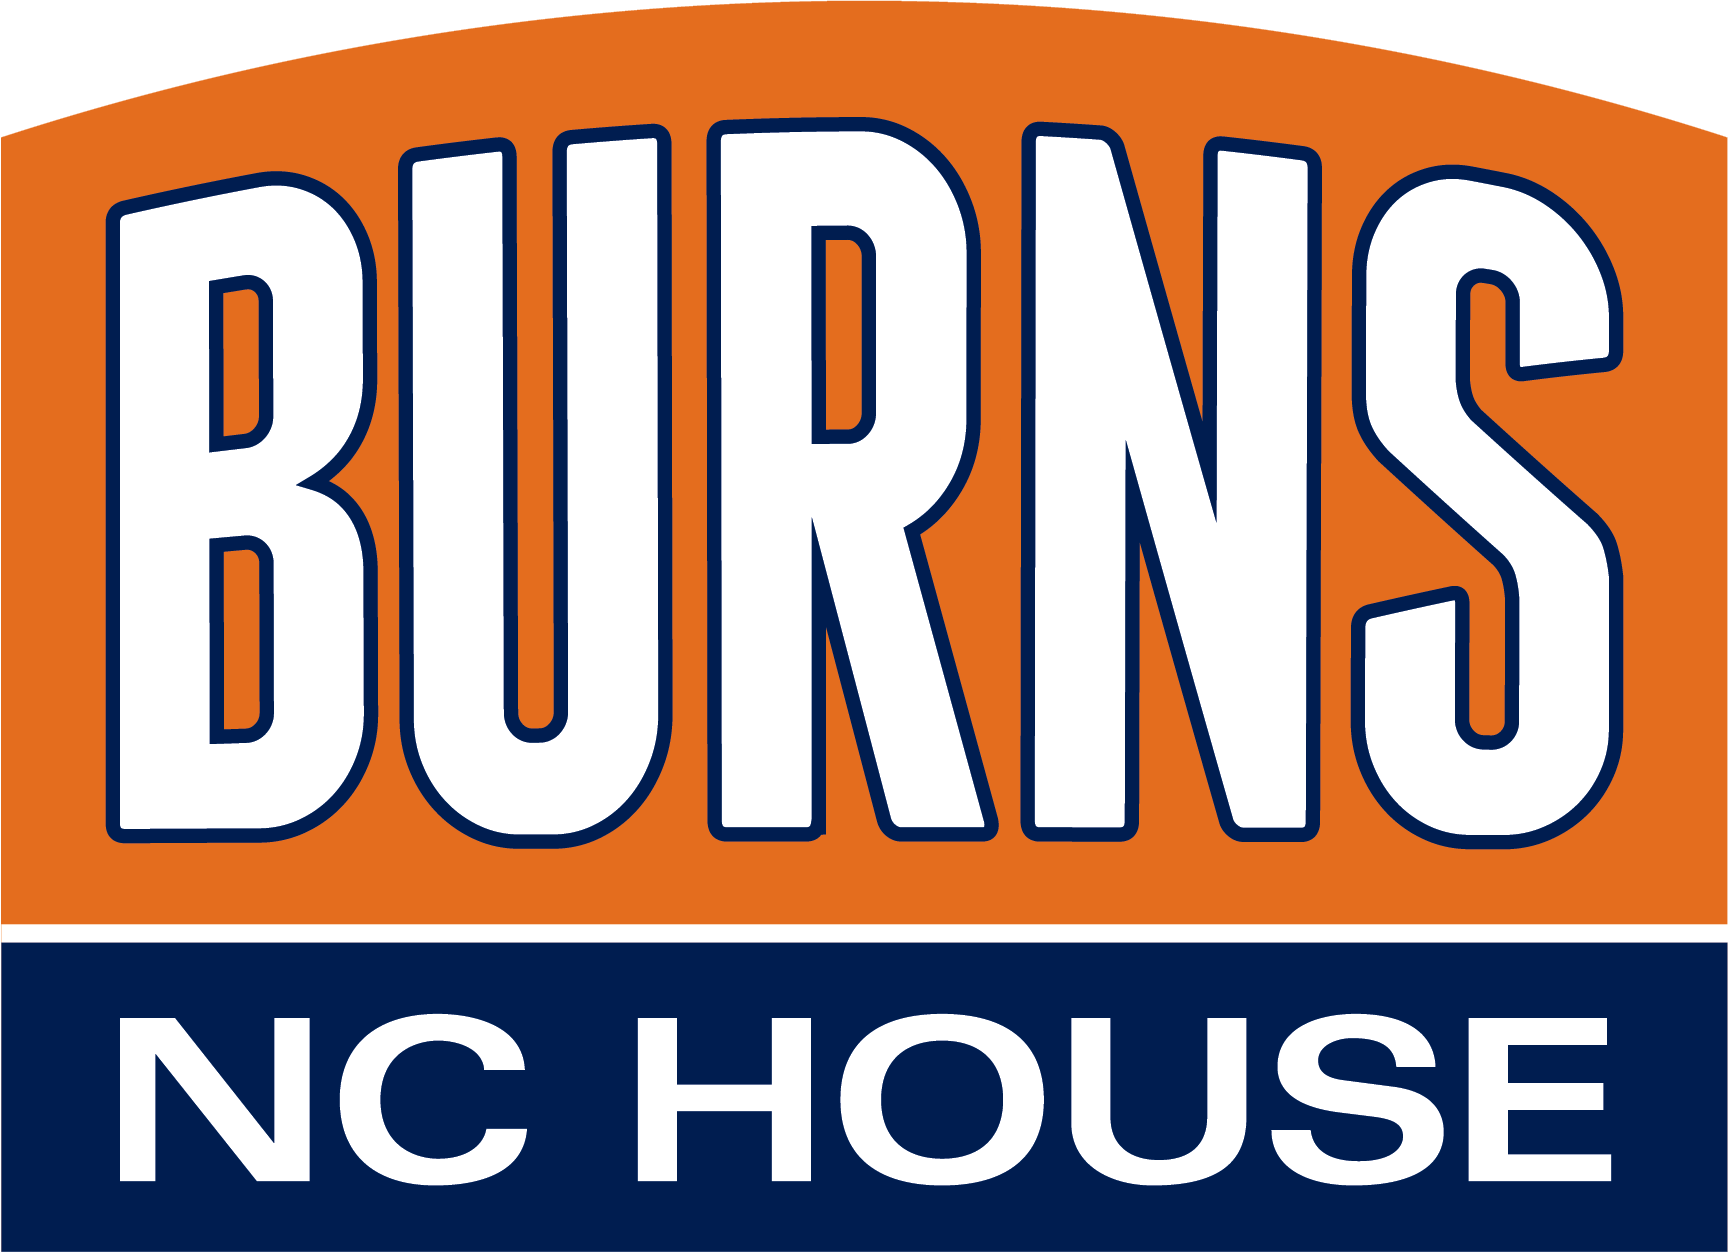 Eric burns logo